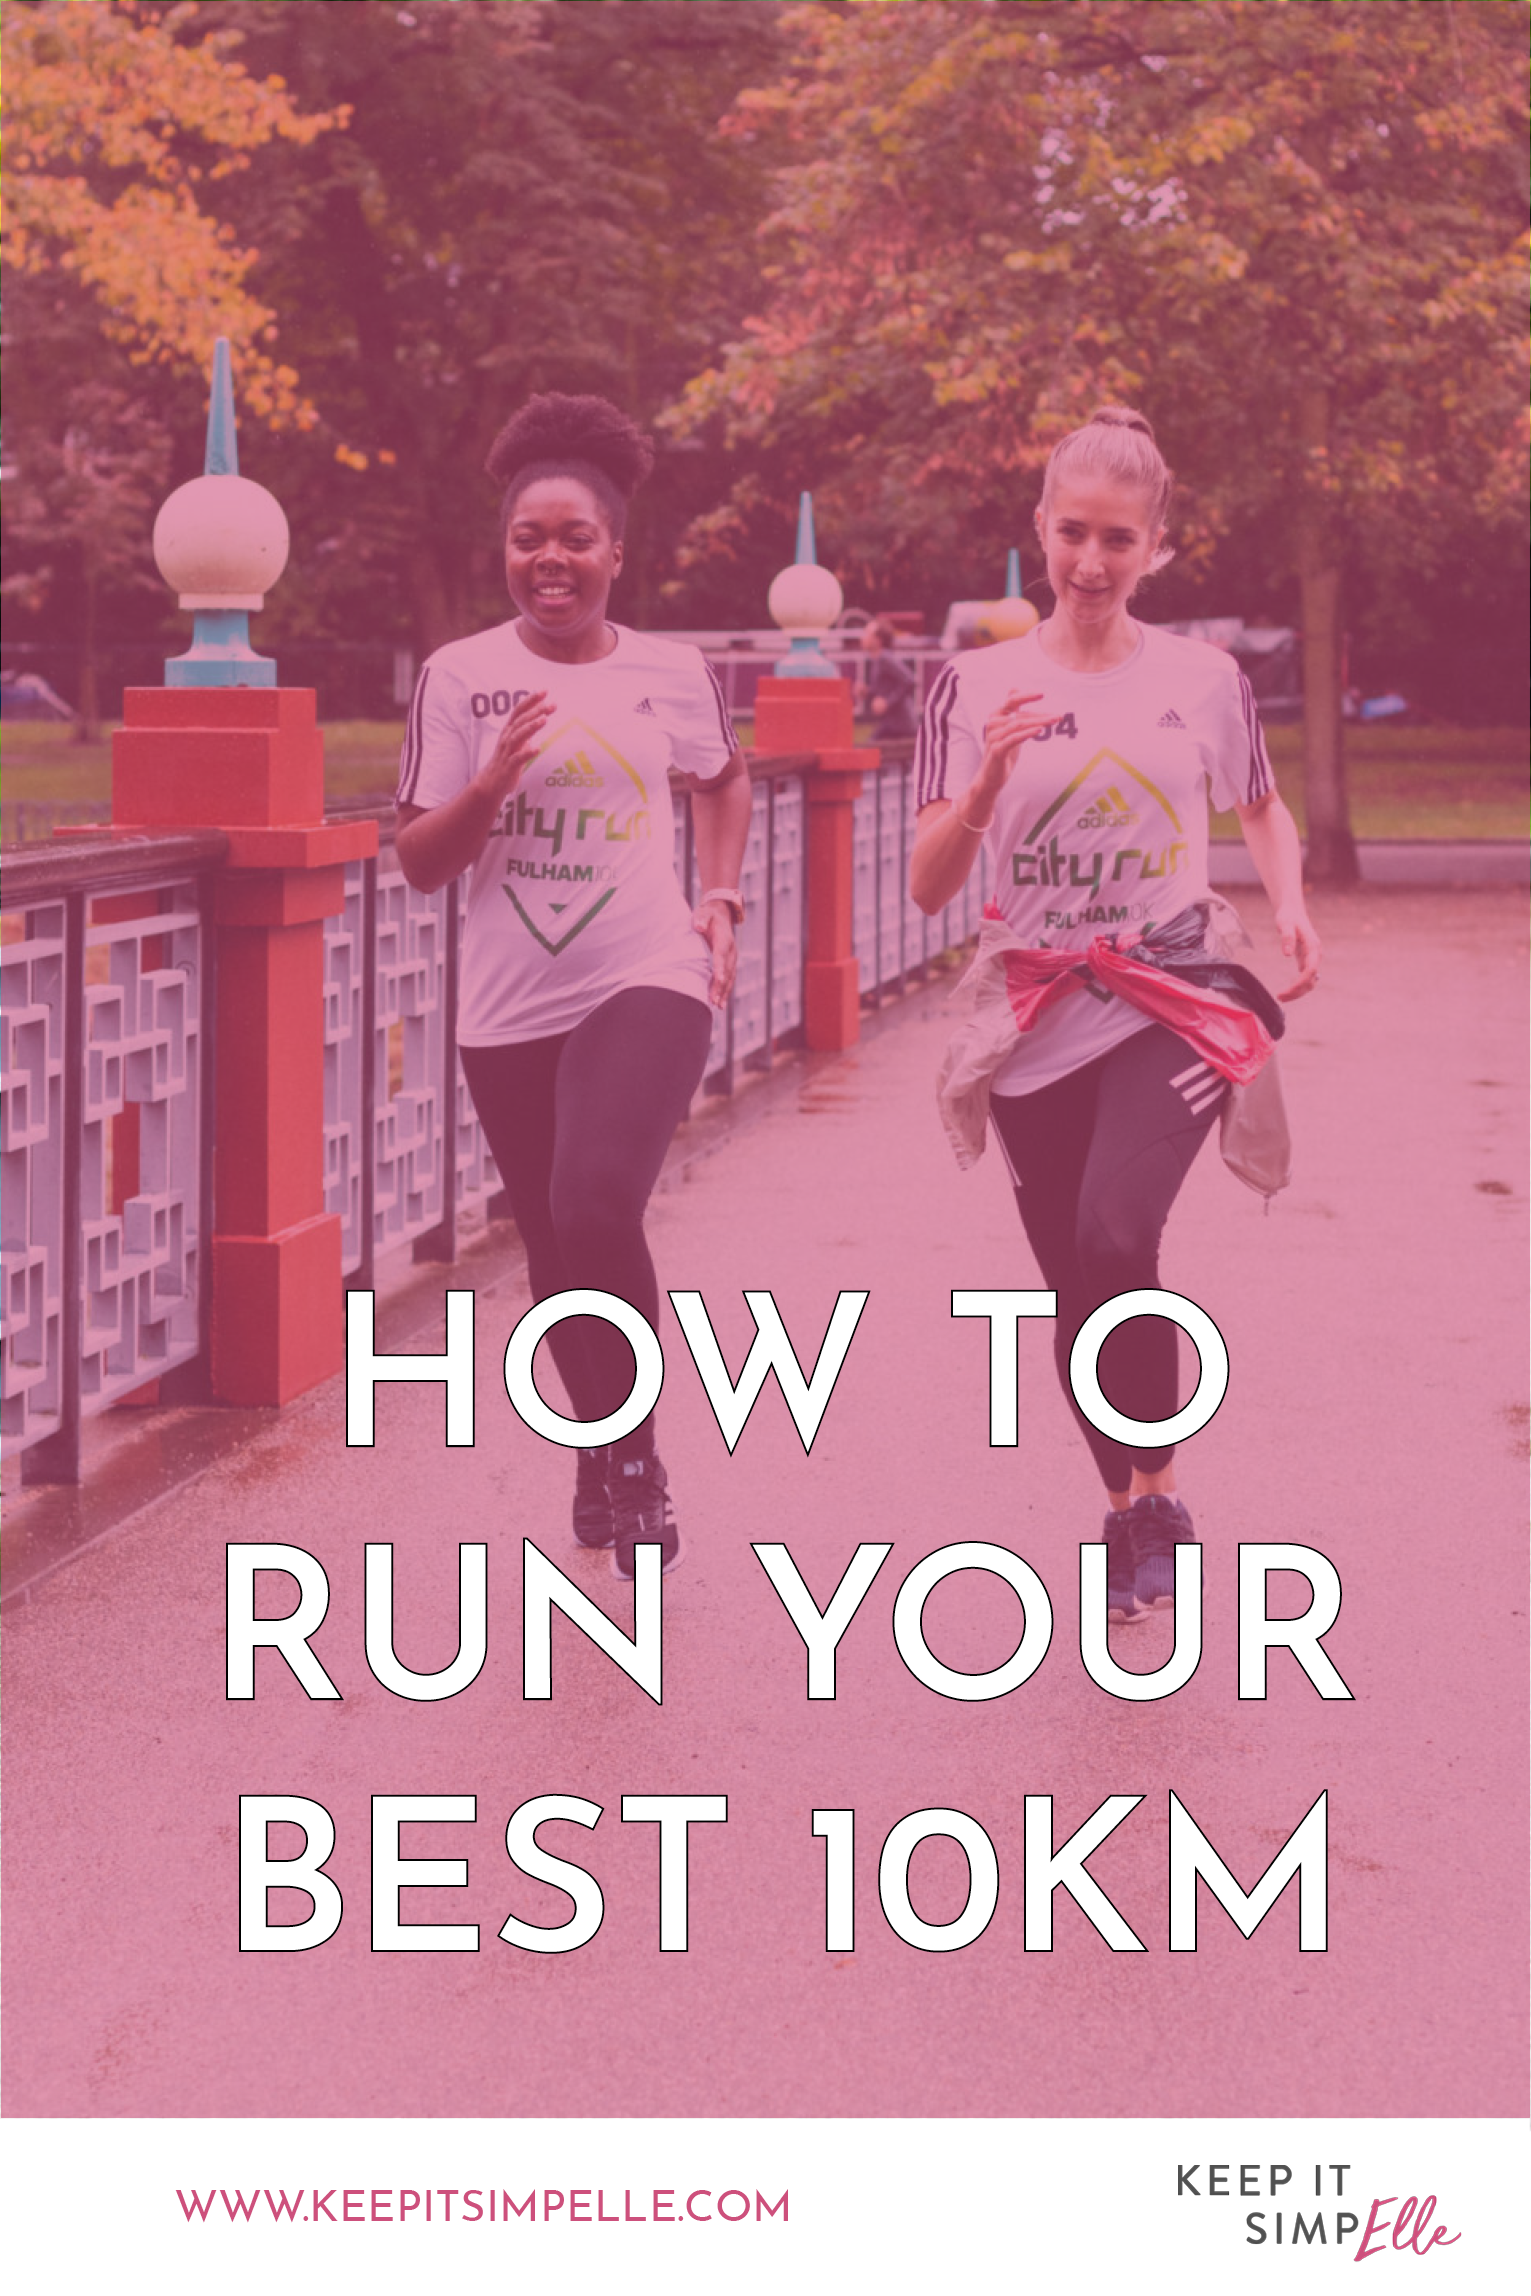 GET TO KNOW THE 10KM DISTANCEBefore you take on the 10km distance as your goal, you really should get clear on what it means to run 10km, what it will feel like and how best to prepare. 10k is a favourite for beginner runners; it's achievable and usually a step up from something like Couch to 5k, or the next step after attending multiple ParkRun events.